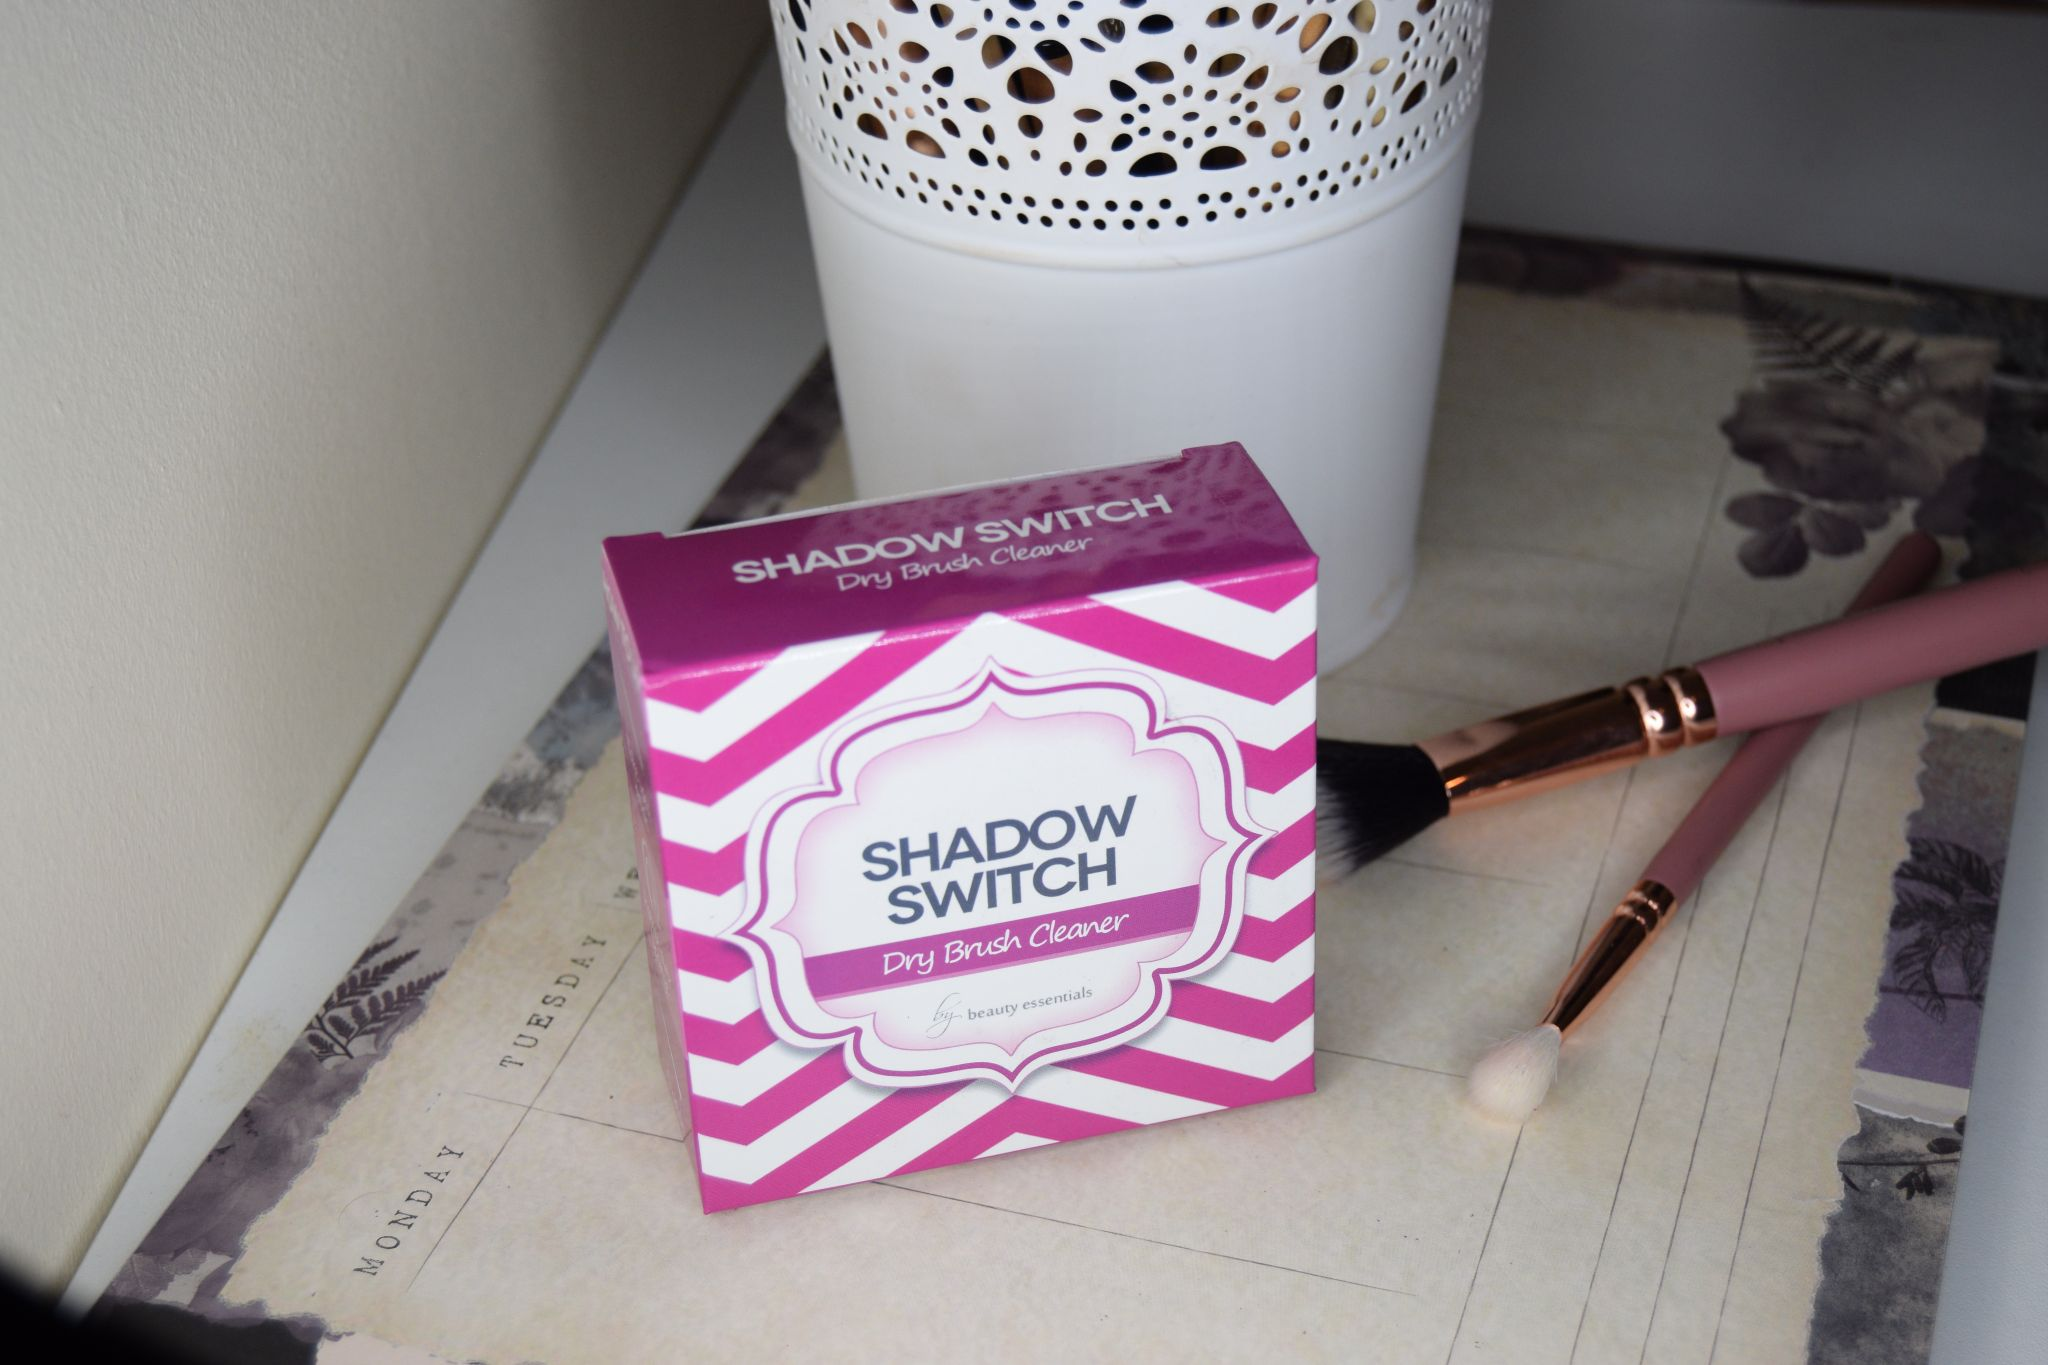 DSC 0929 1440x960 - Shadow Switch by Beauty Essentials